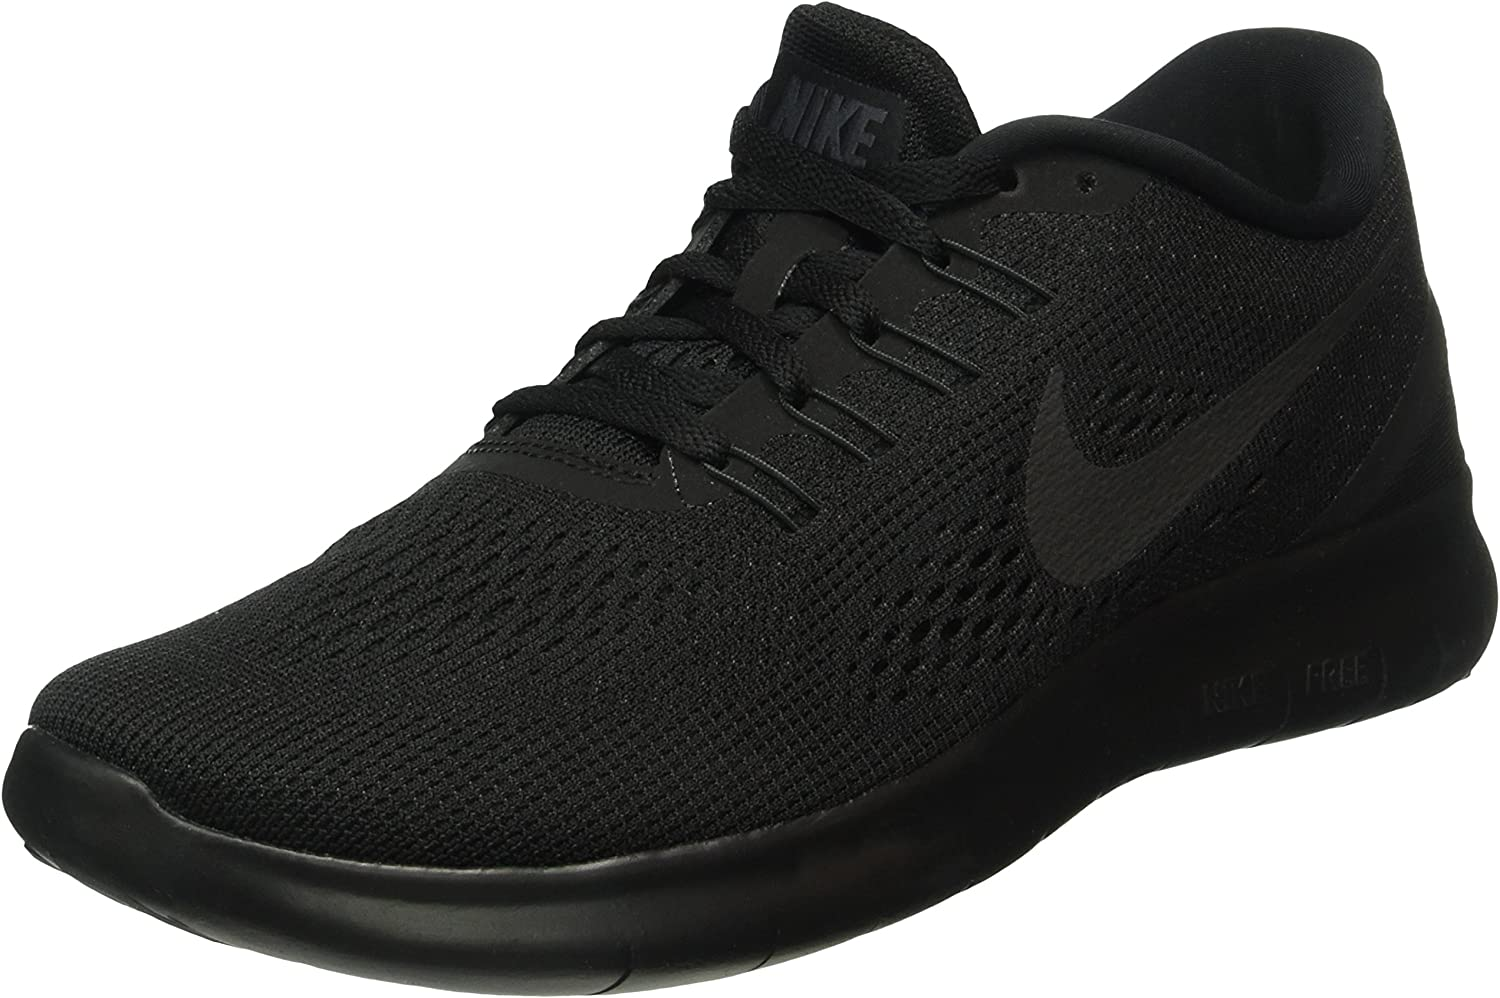 Nike Men S Free Rn Running Shoes Women 2 Road Running